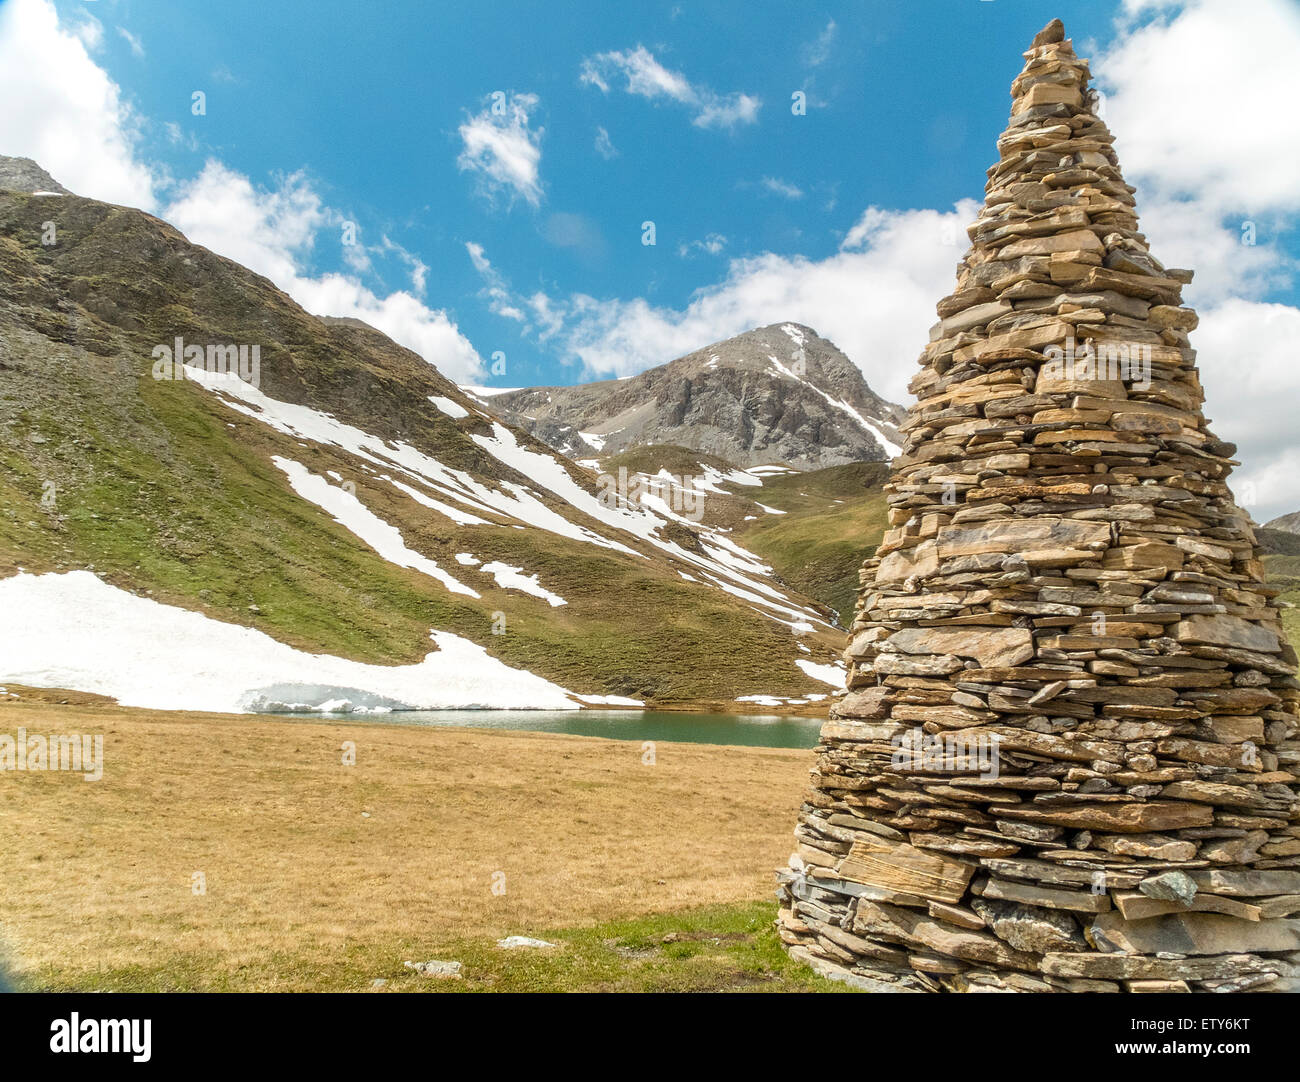 Large stone cairn in the high alps with snowfield and peak - Stock Image